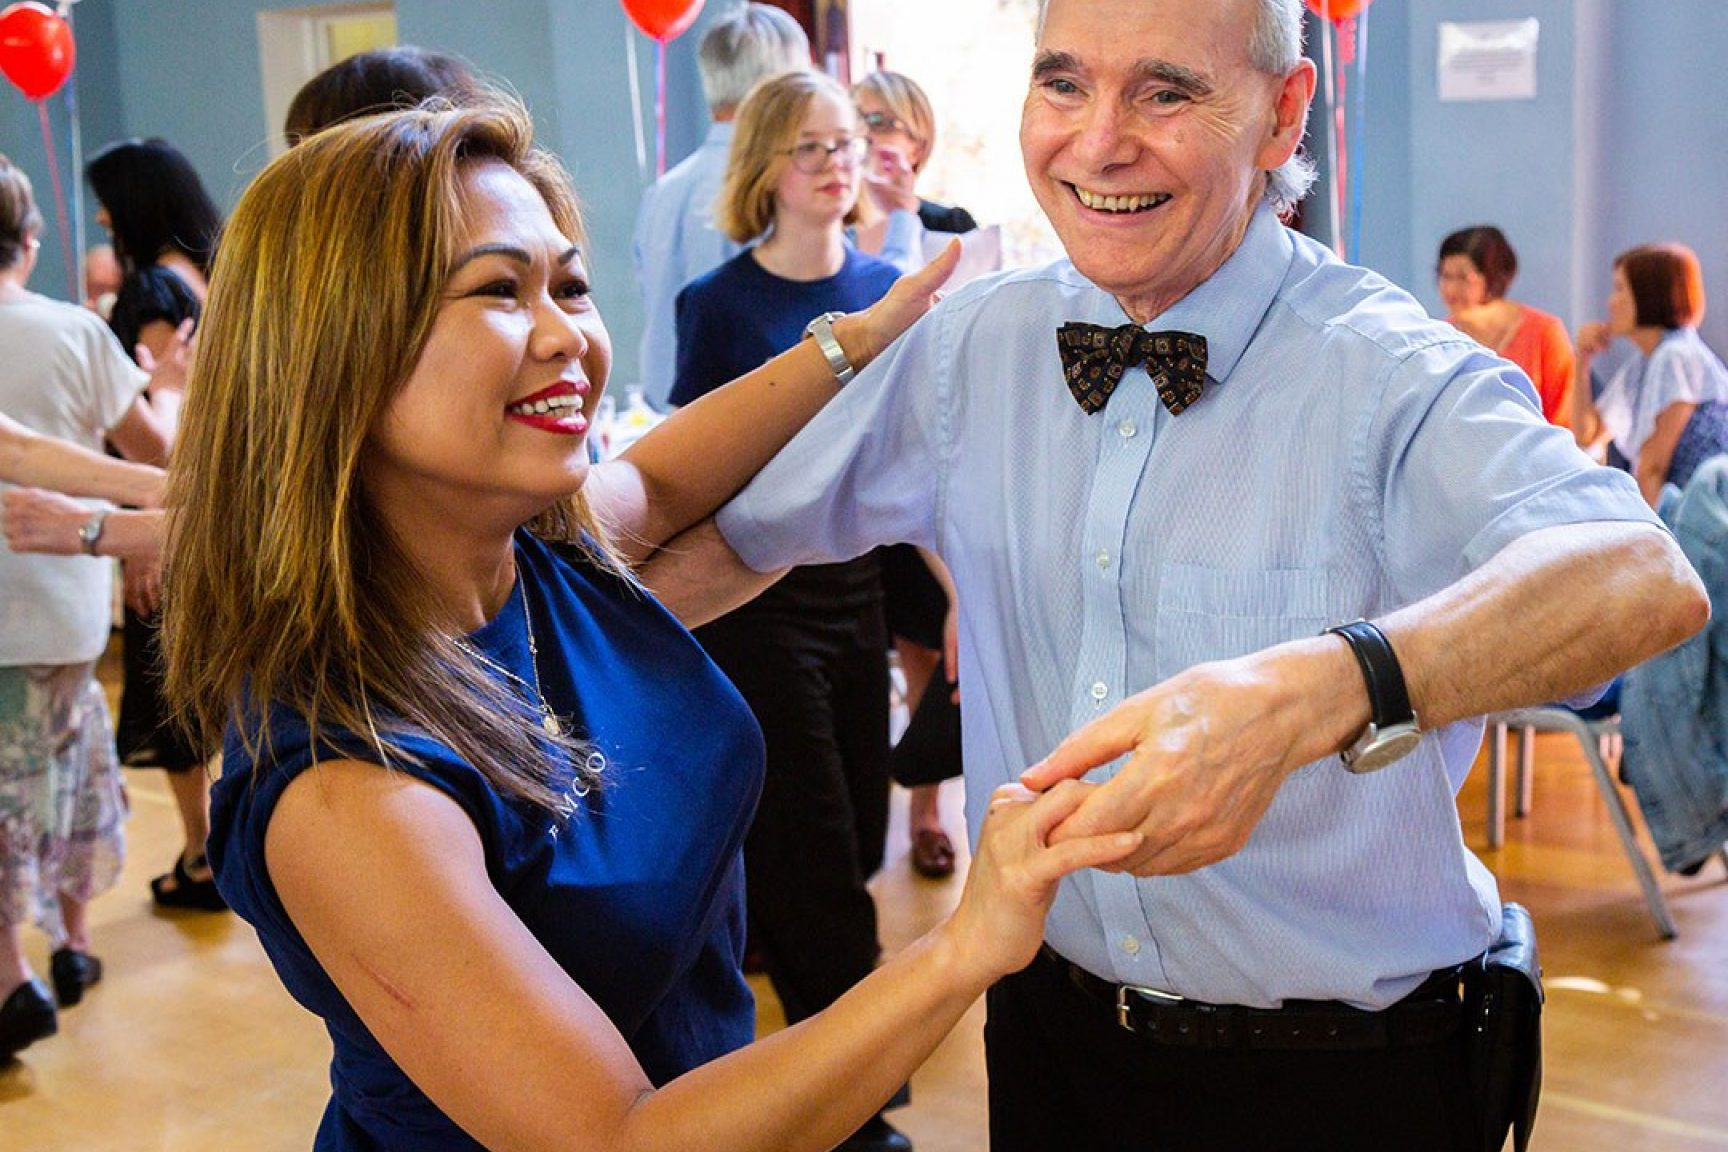 A female volunteer is dancing with an older man at a community event, they are both smiling and having fun.